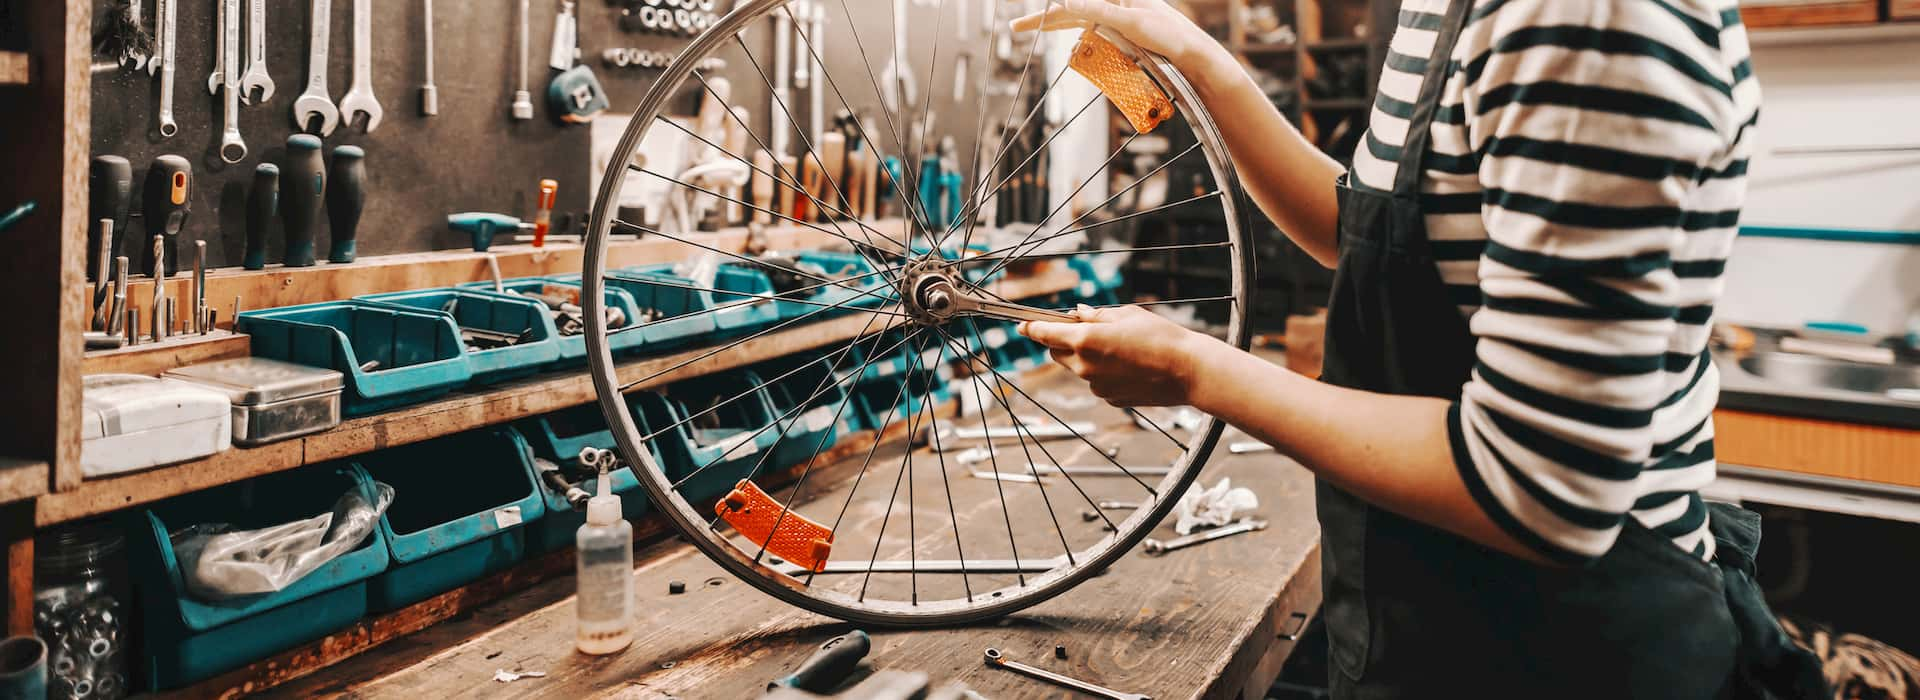 Cute Caucasian female worker holding and repairing bicycle wheel while standing in bicycle workshop. © Adobe Stock